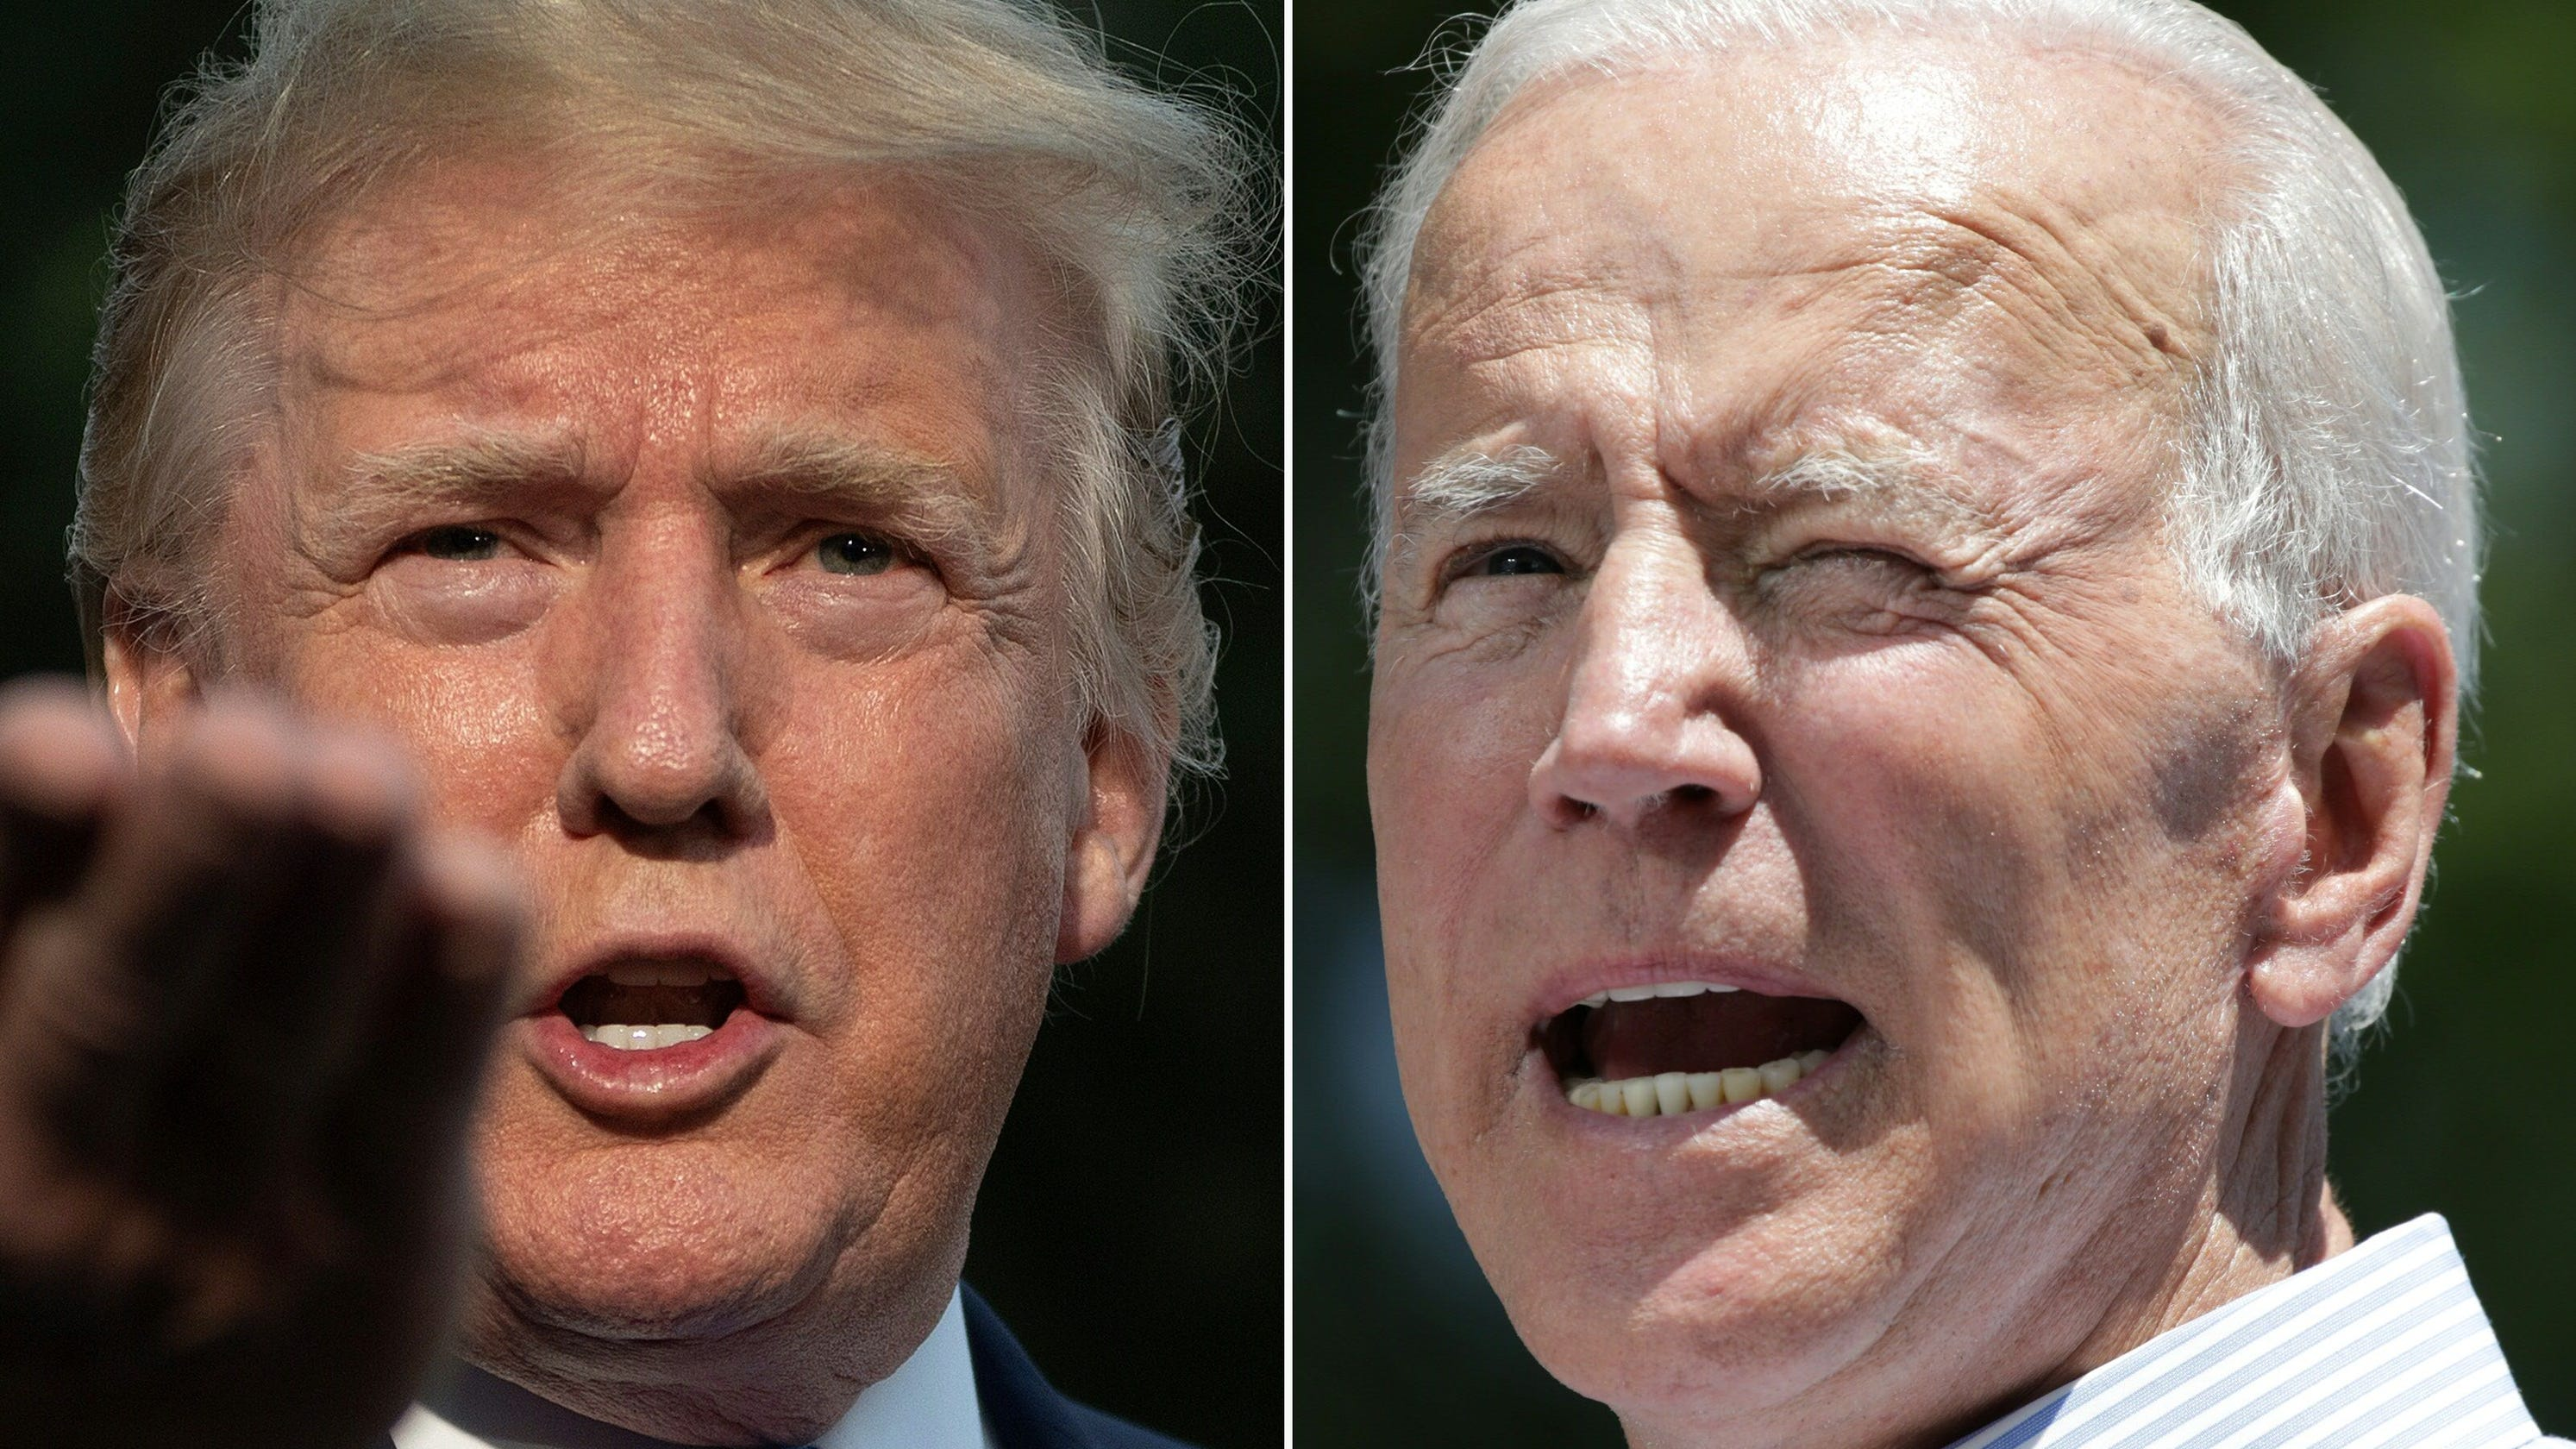 Poll: Biden leads Trump by 13 percentage points nationally in head-to-head matchup - USA TODAY